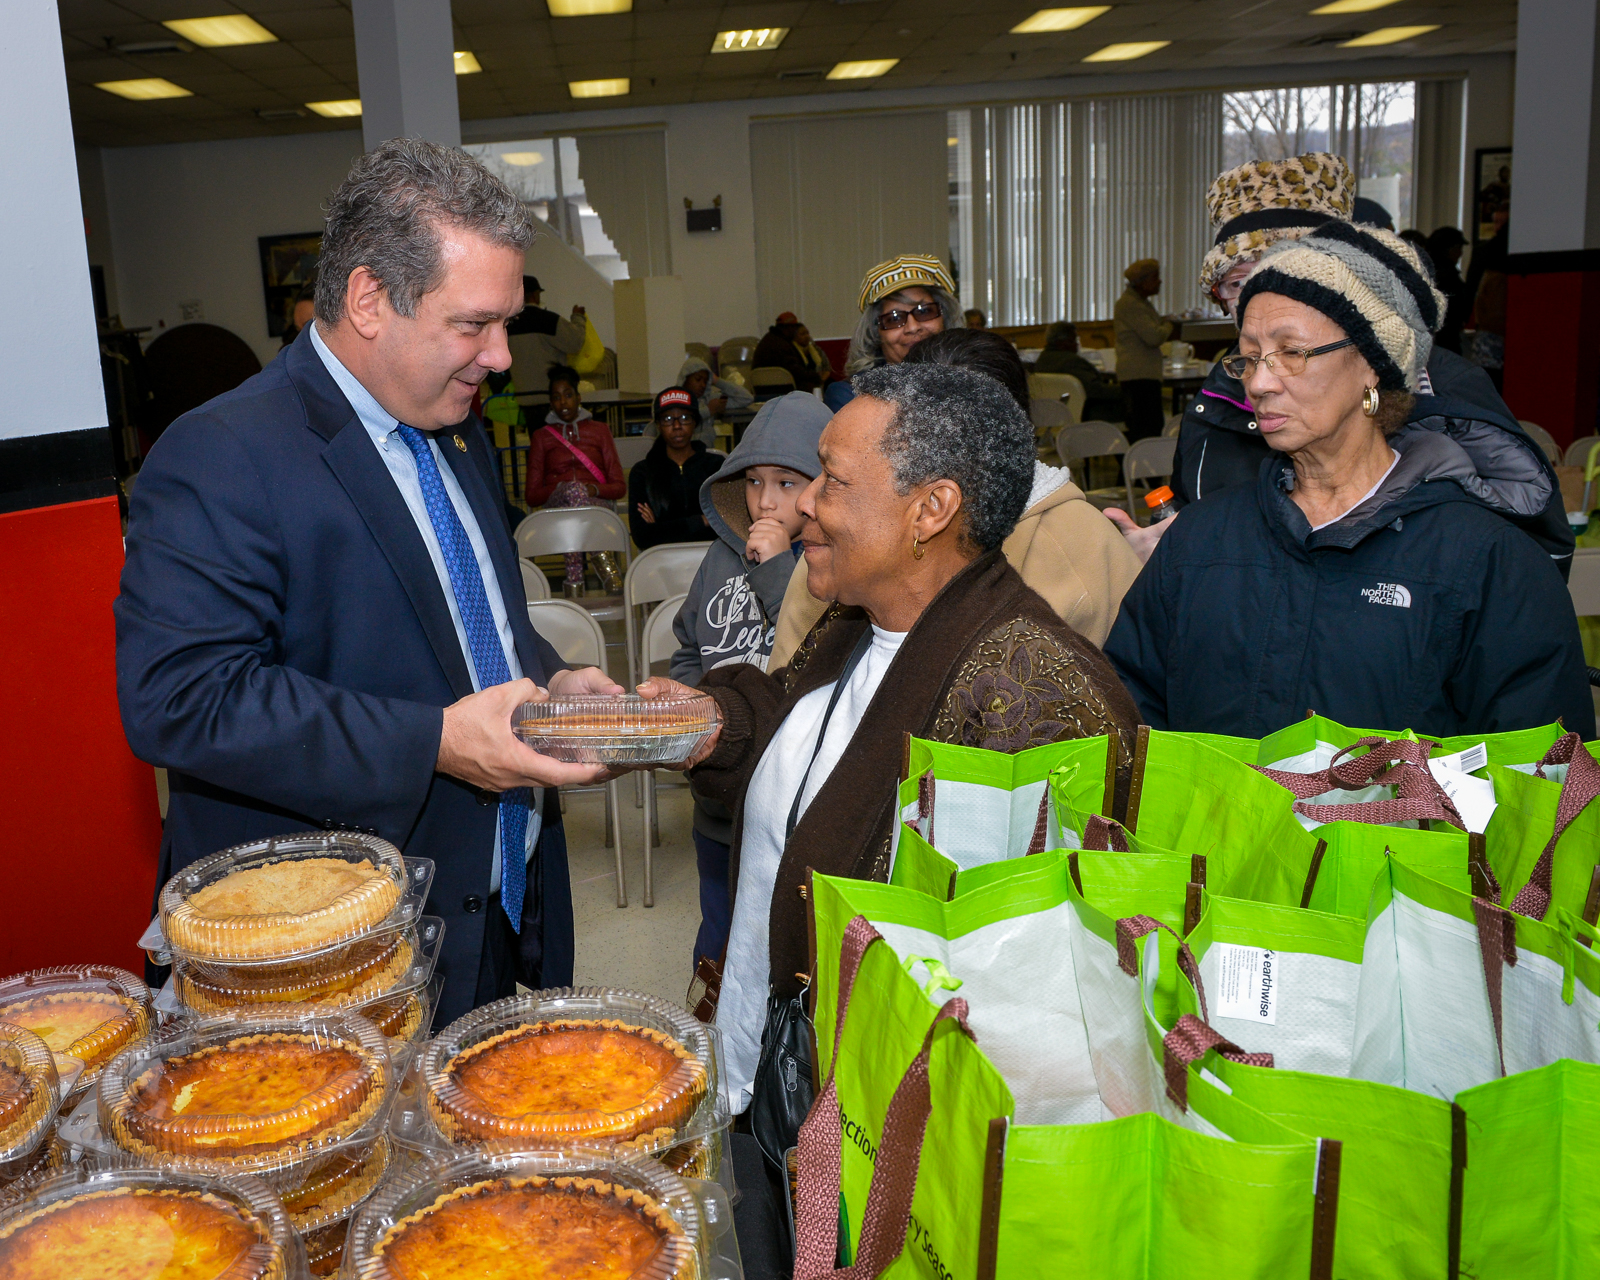 Mayor Mike Spano donates Thanksgiving Meals to Needy Families